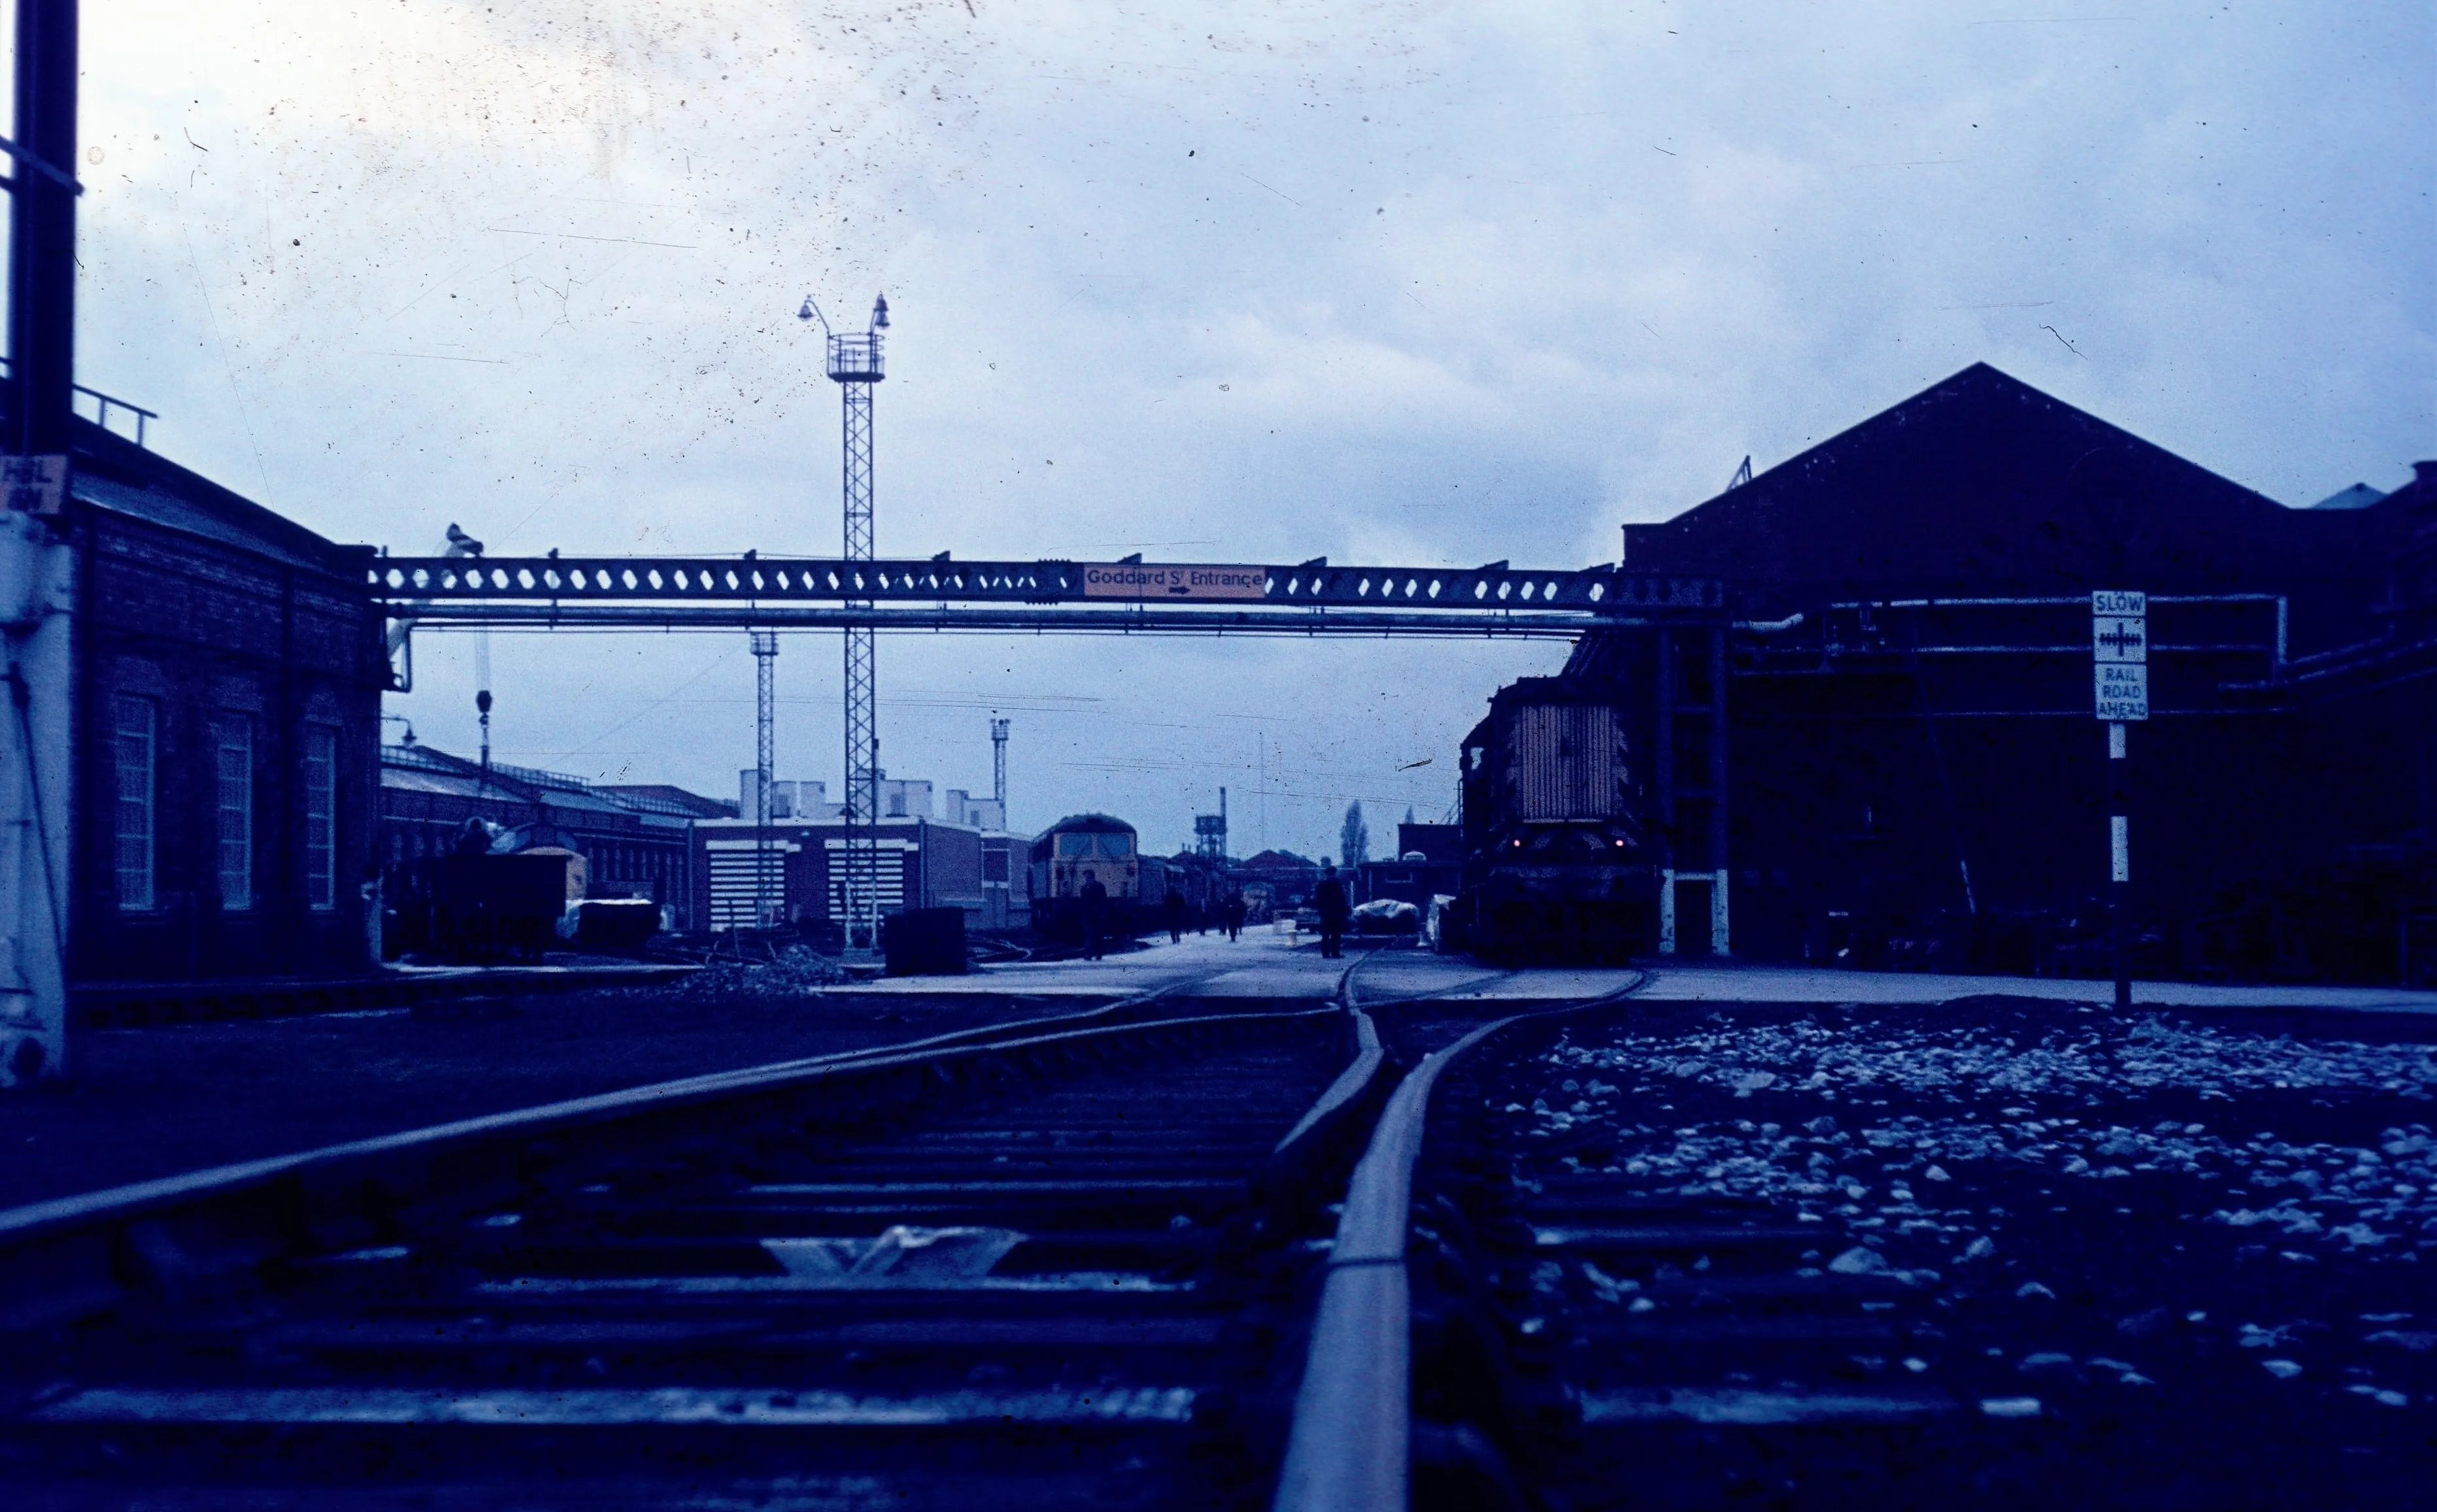 Tracks adjacent to traverser in Crewe Works over which locomotives arrived and departed